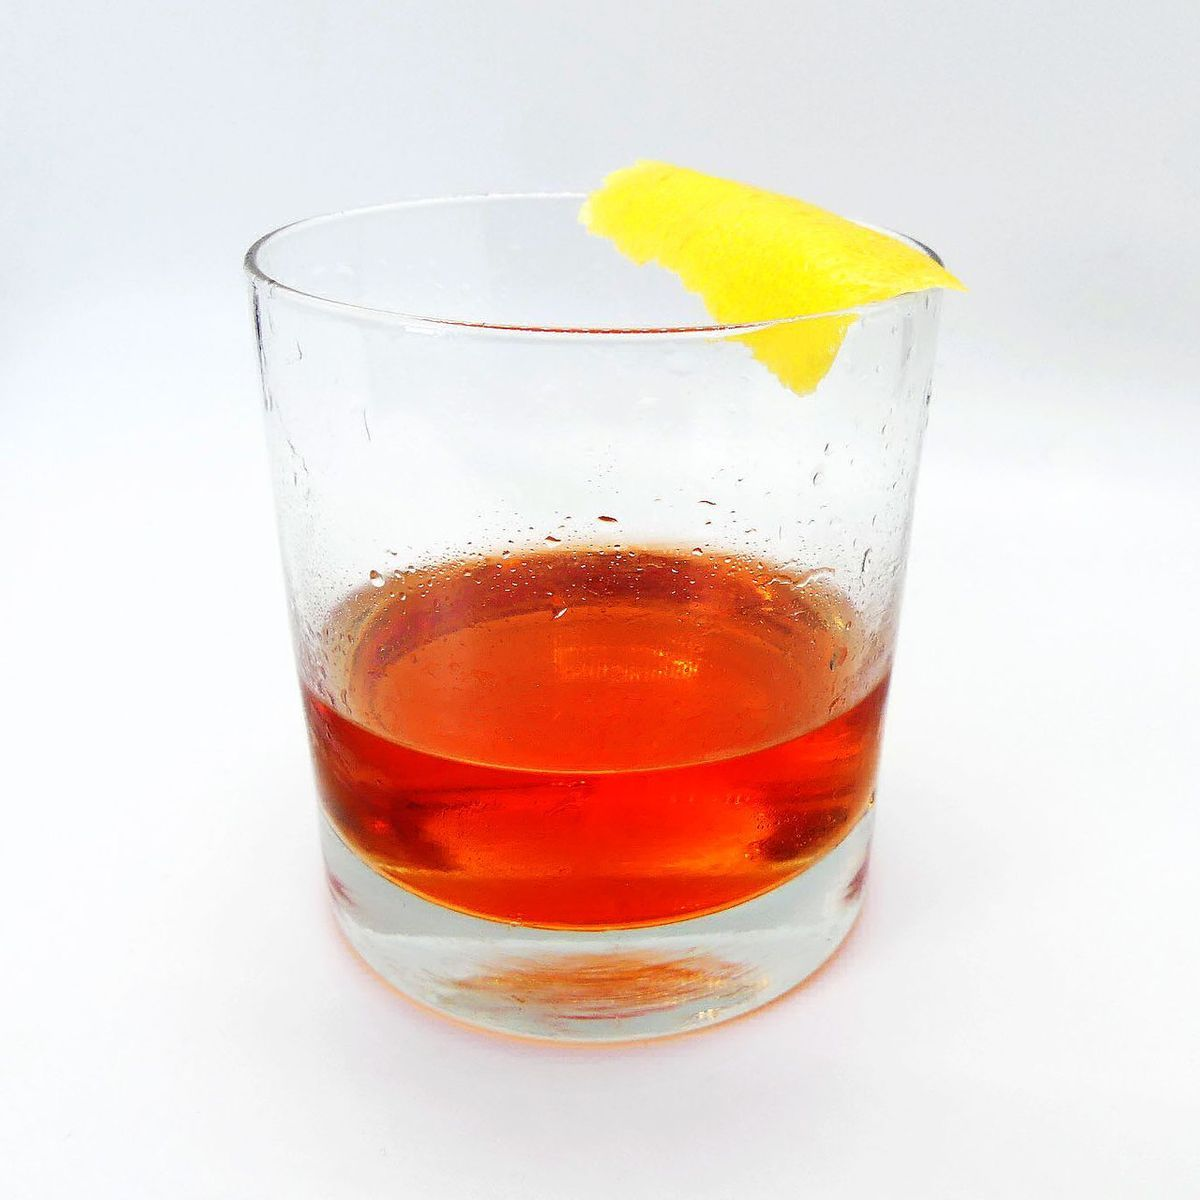 The famed Sazerac is perhaps the most noteworthy of New Orleans original cocktails. While the one we are mostly accustomed to is made with Rye, many believe that the original Sazerac used cognac as its base spirit. As with so much of cocktail history, no one knows for sure. And while that may not satisfy your inner history buff, you can satisfy your thirst for a bracing but delicious drink by making one of these!